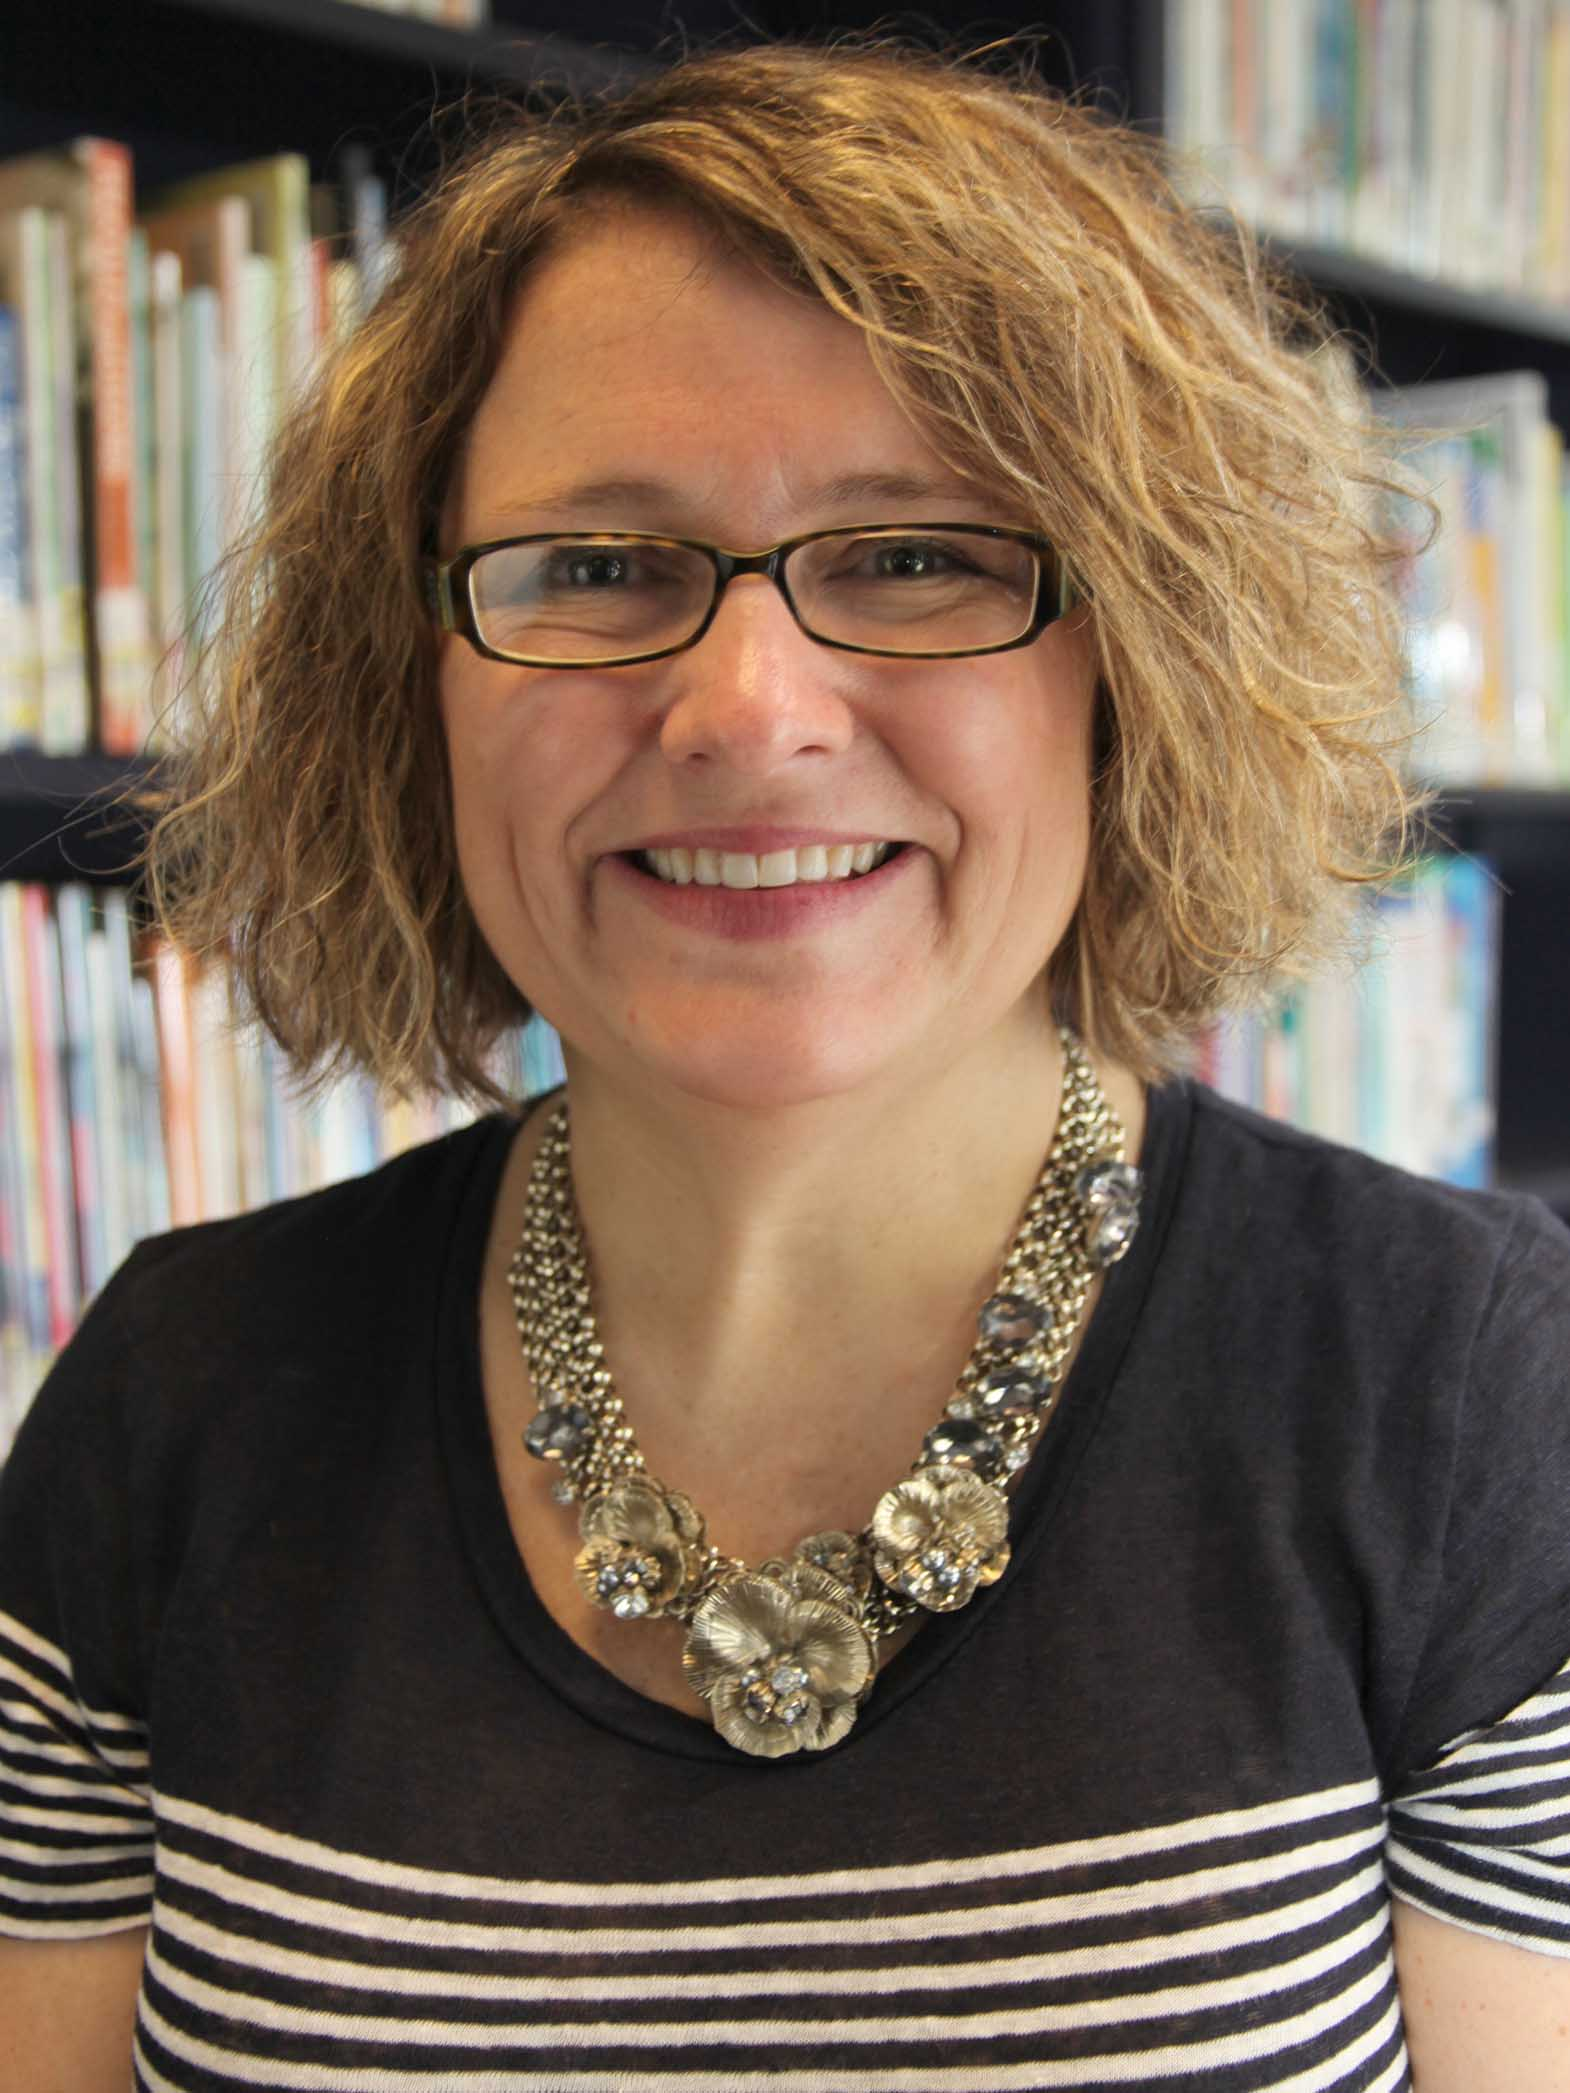 Dr. Erica Lembke, Associate Professor, Special Education, University of Missouri